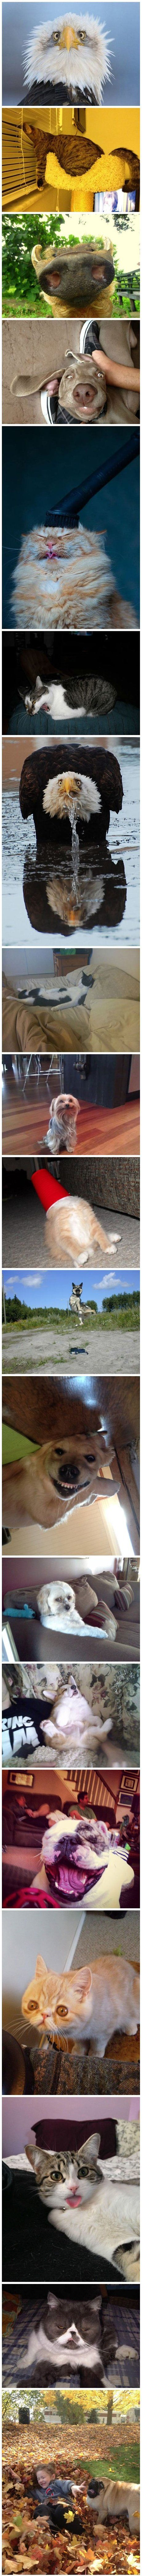 This is absolutely hilarious!!! Animals doing funny things!!! my sister could not stop laughing!!!